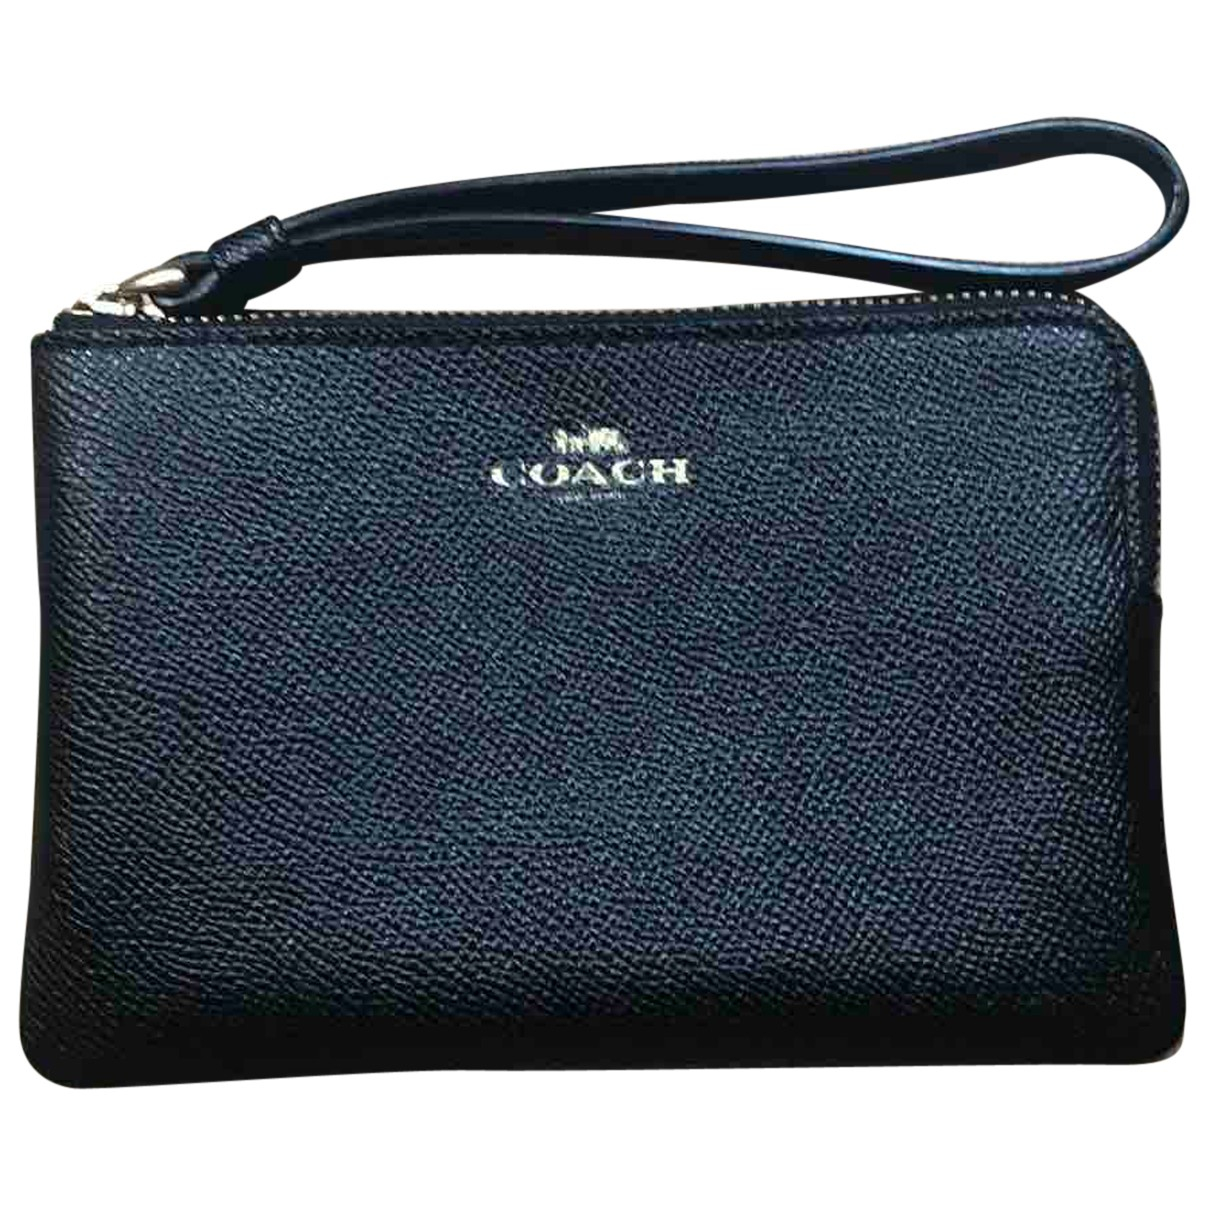 Coach N Black Leather Purses, wallet & cases for Women N